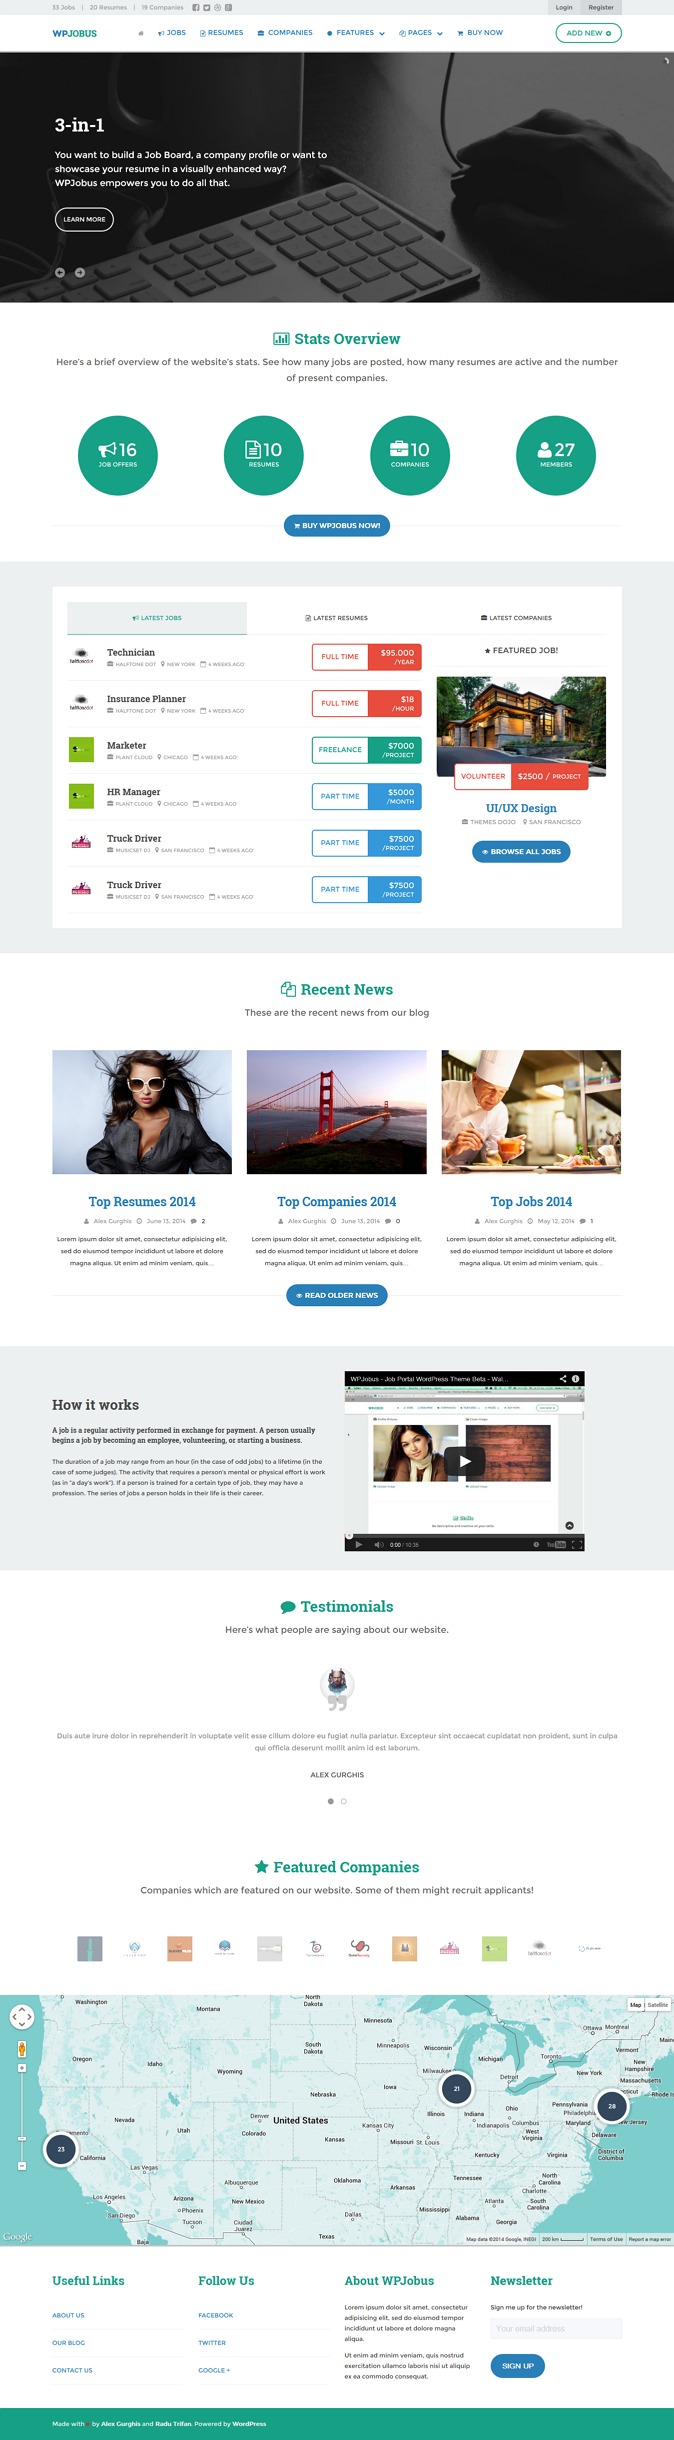 WPJobus is a robust 3-in-1 WordPress Responsive Theme, which you can use as a Job Board / Portal ...